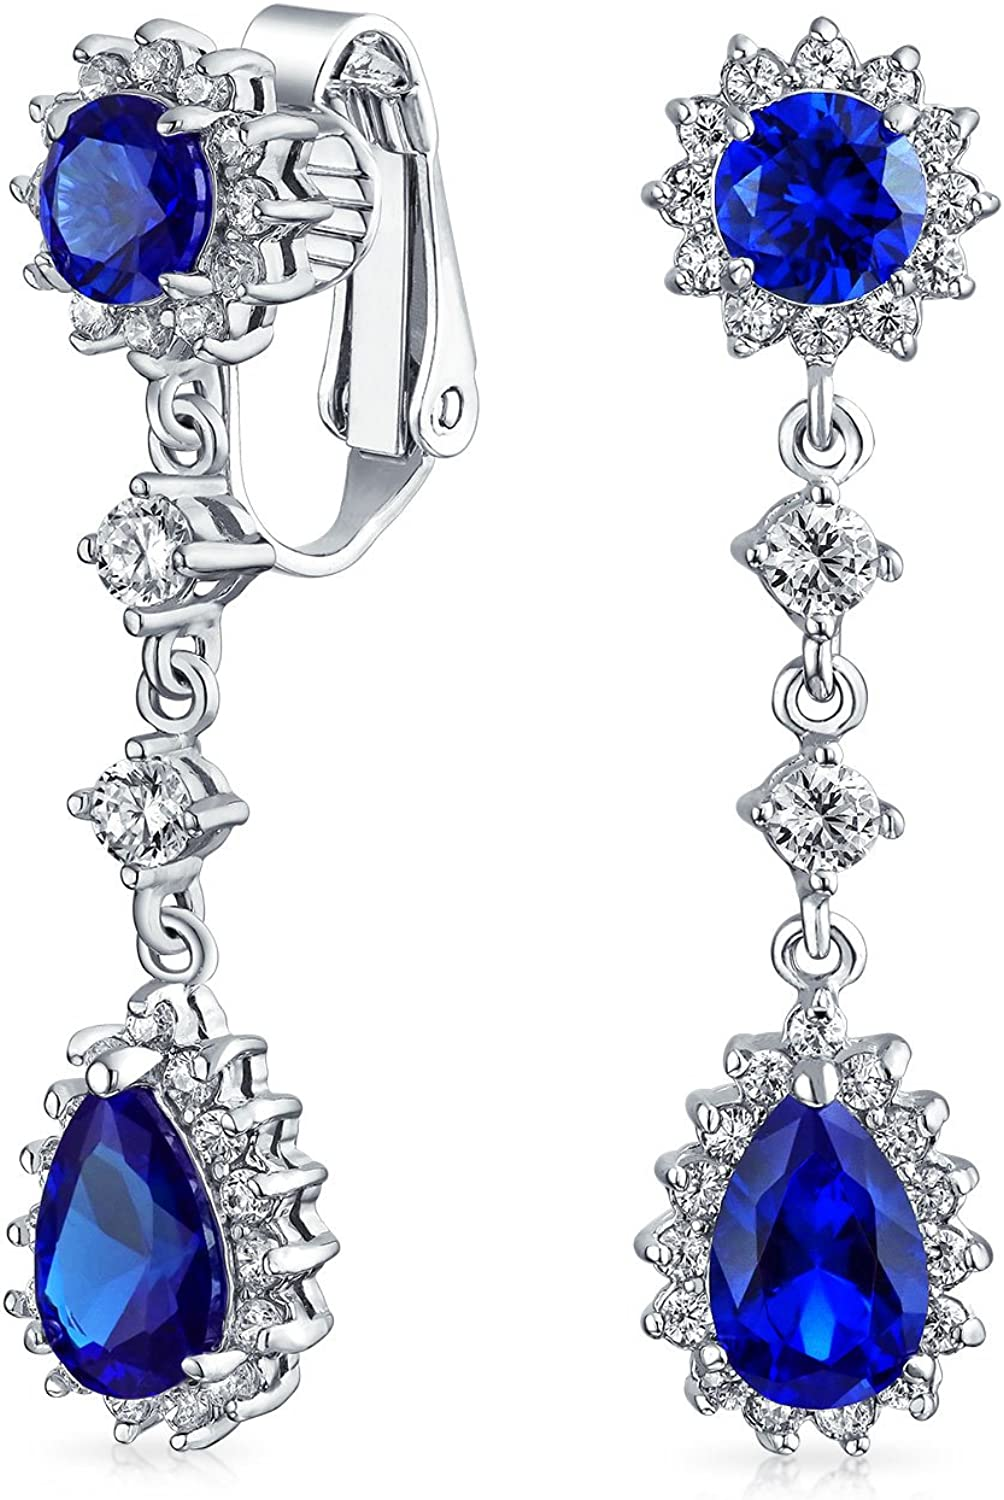 Bridal Statement Teardrop Pave Crown Halo Cubic Zirconia AAA CZ Dangle Chandelier Clip On Earrings For Women More Colors